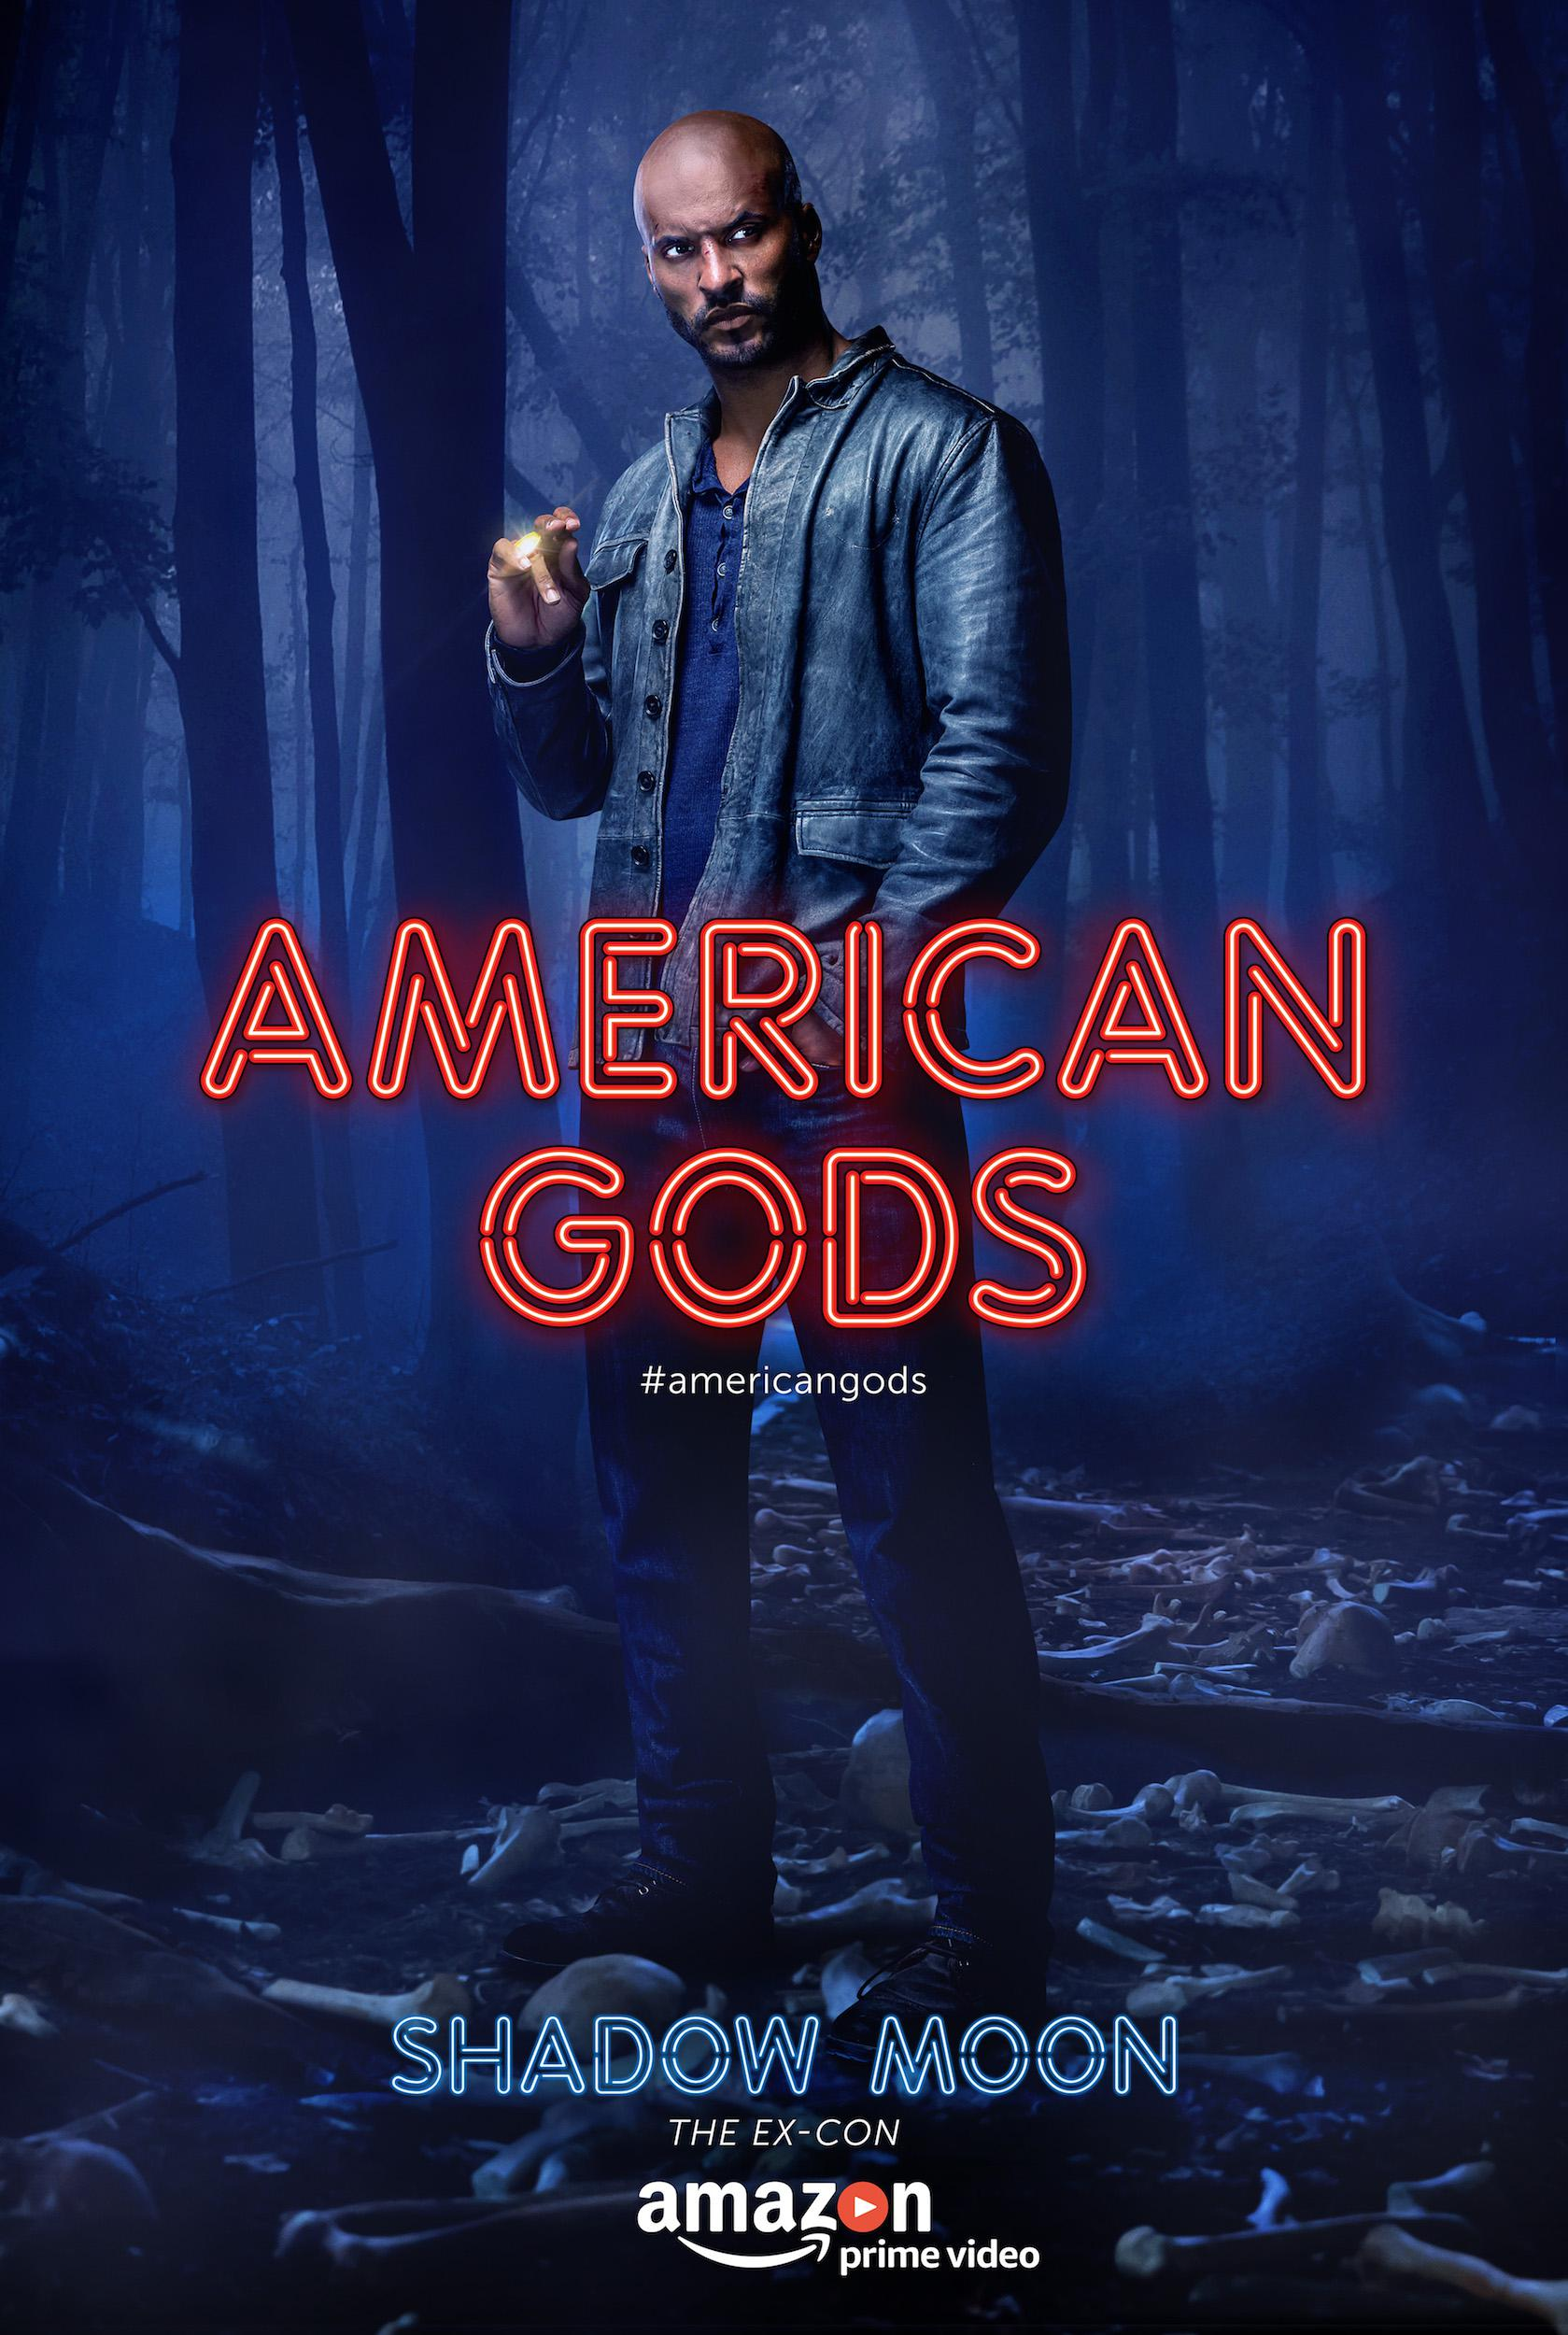 American Gods - Series - Ricky Whittle as Shadow Moon